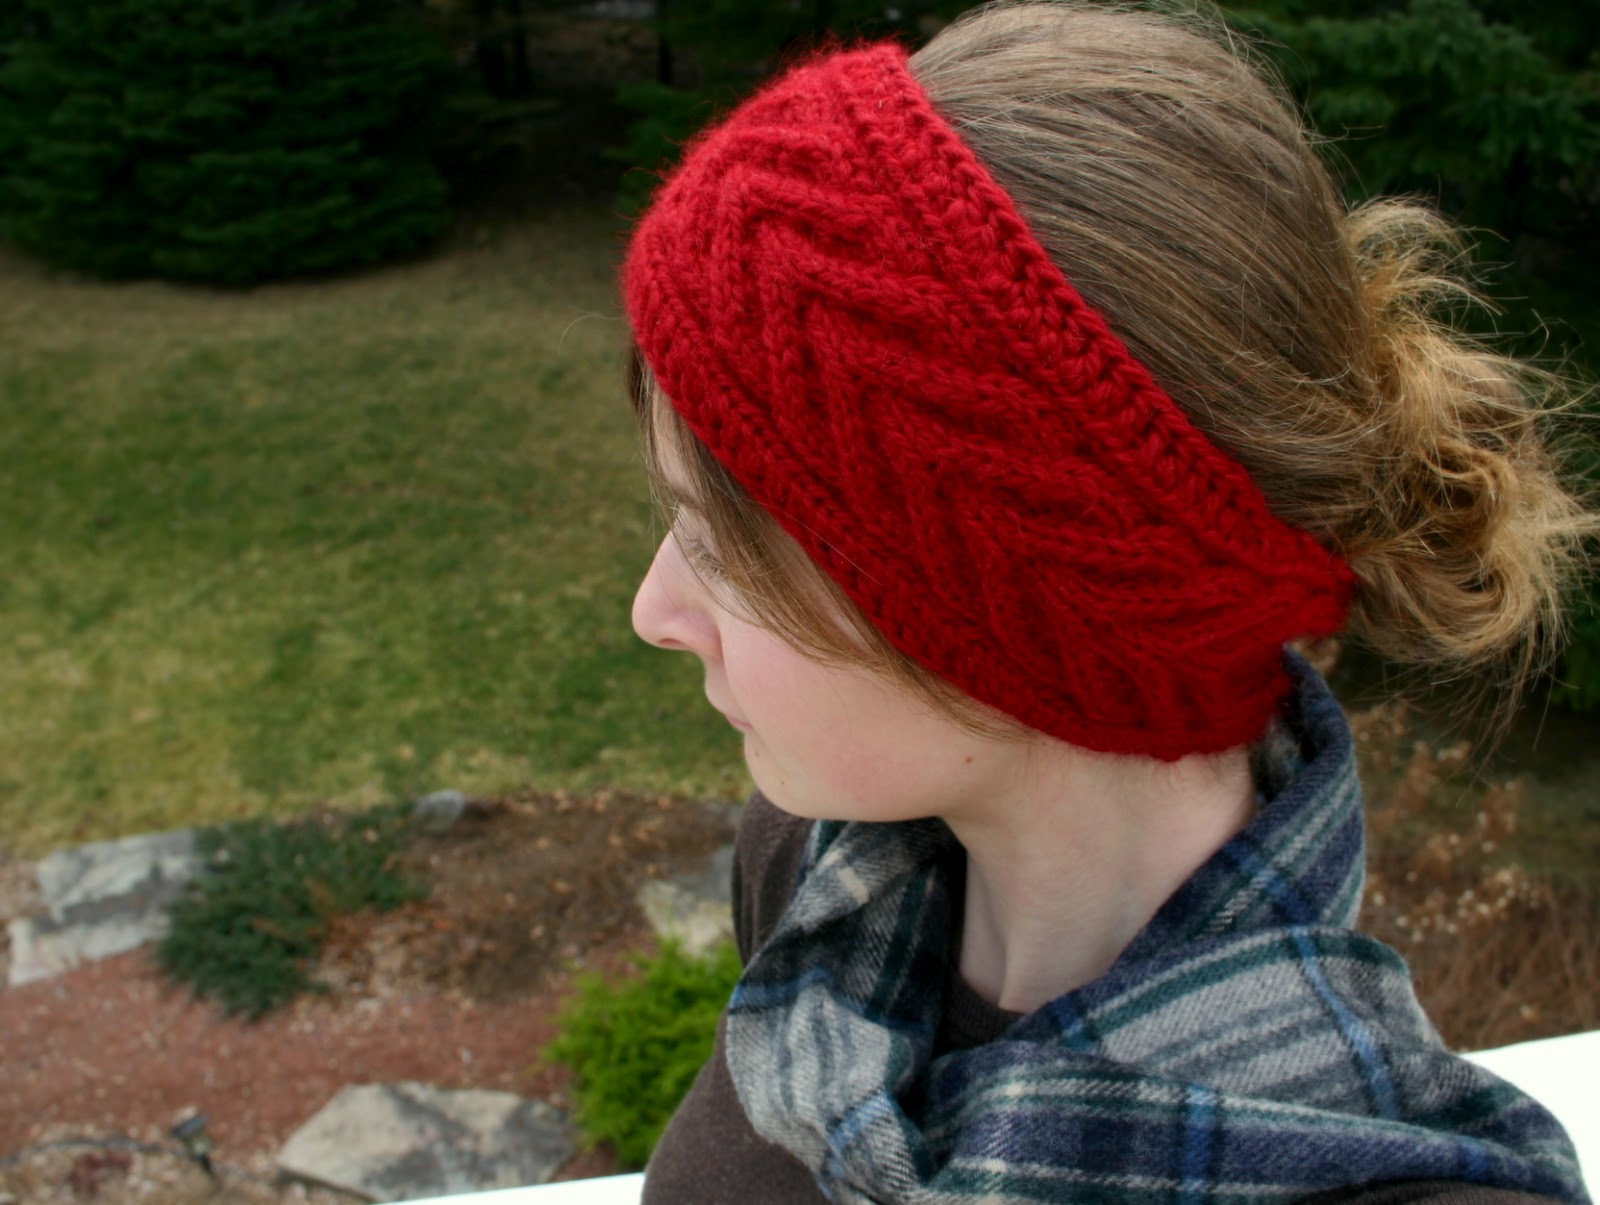 Knitted Headband Patterns Free : The Fuzzy Square: Horseshoe Cable Headband Knitting and Crochet Pattern